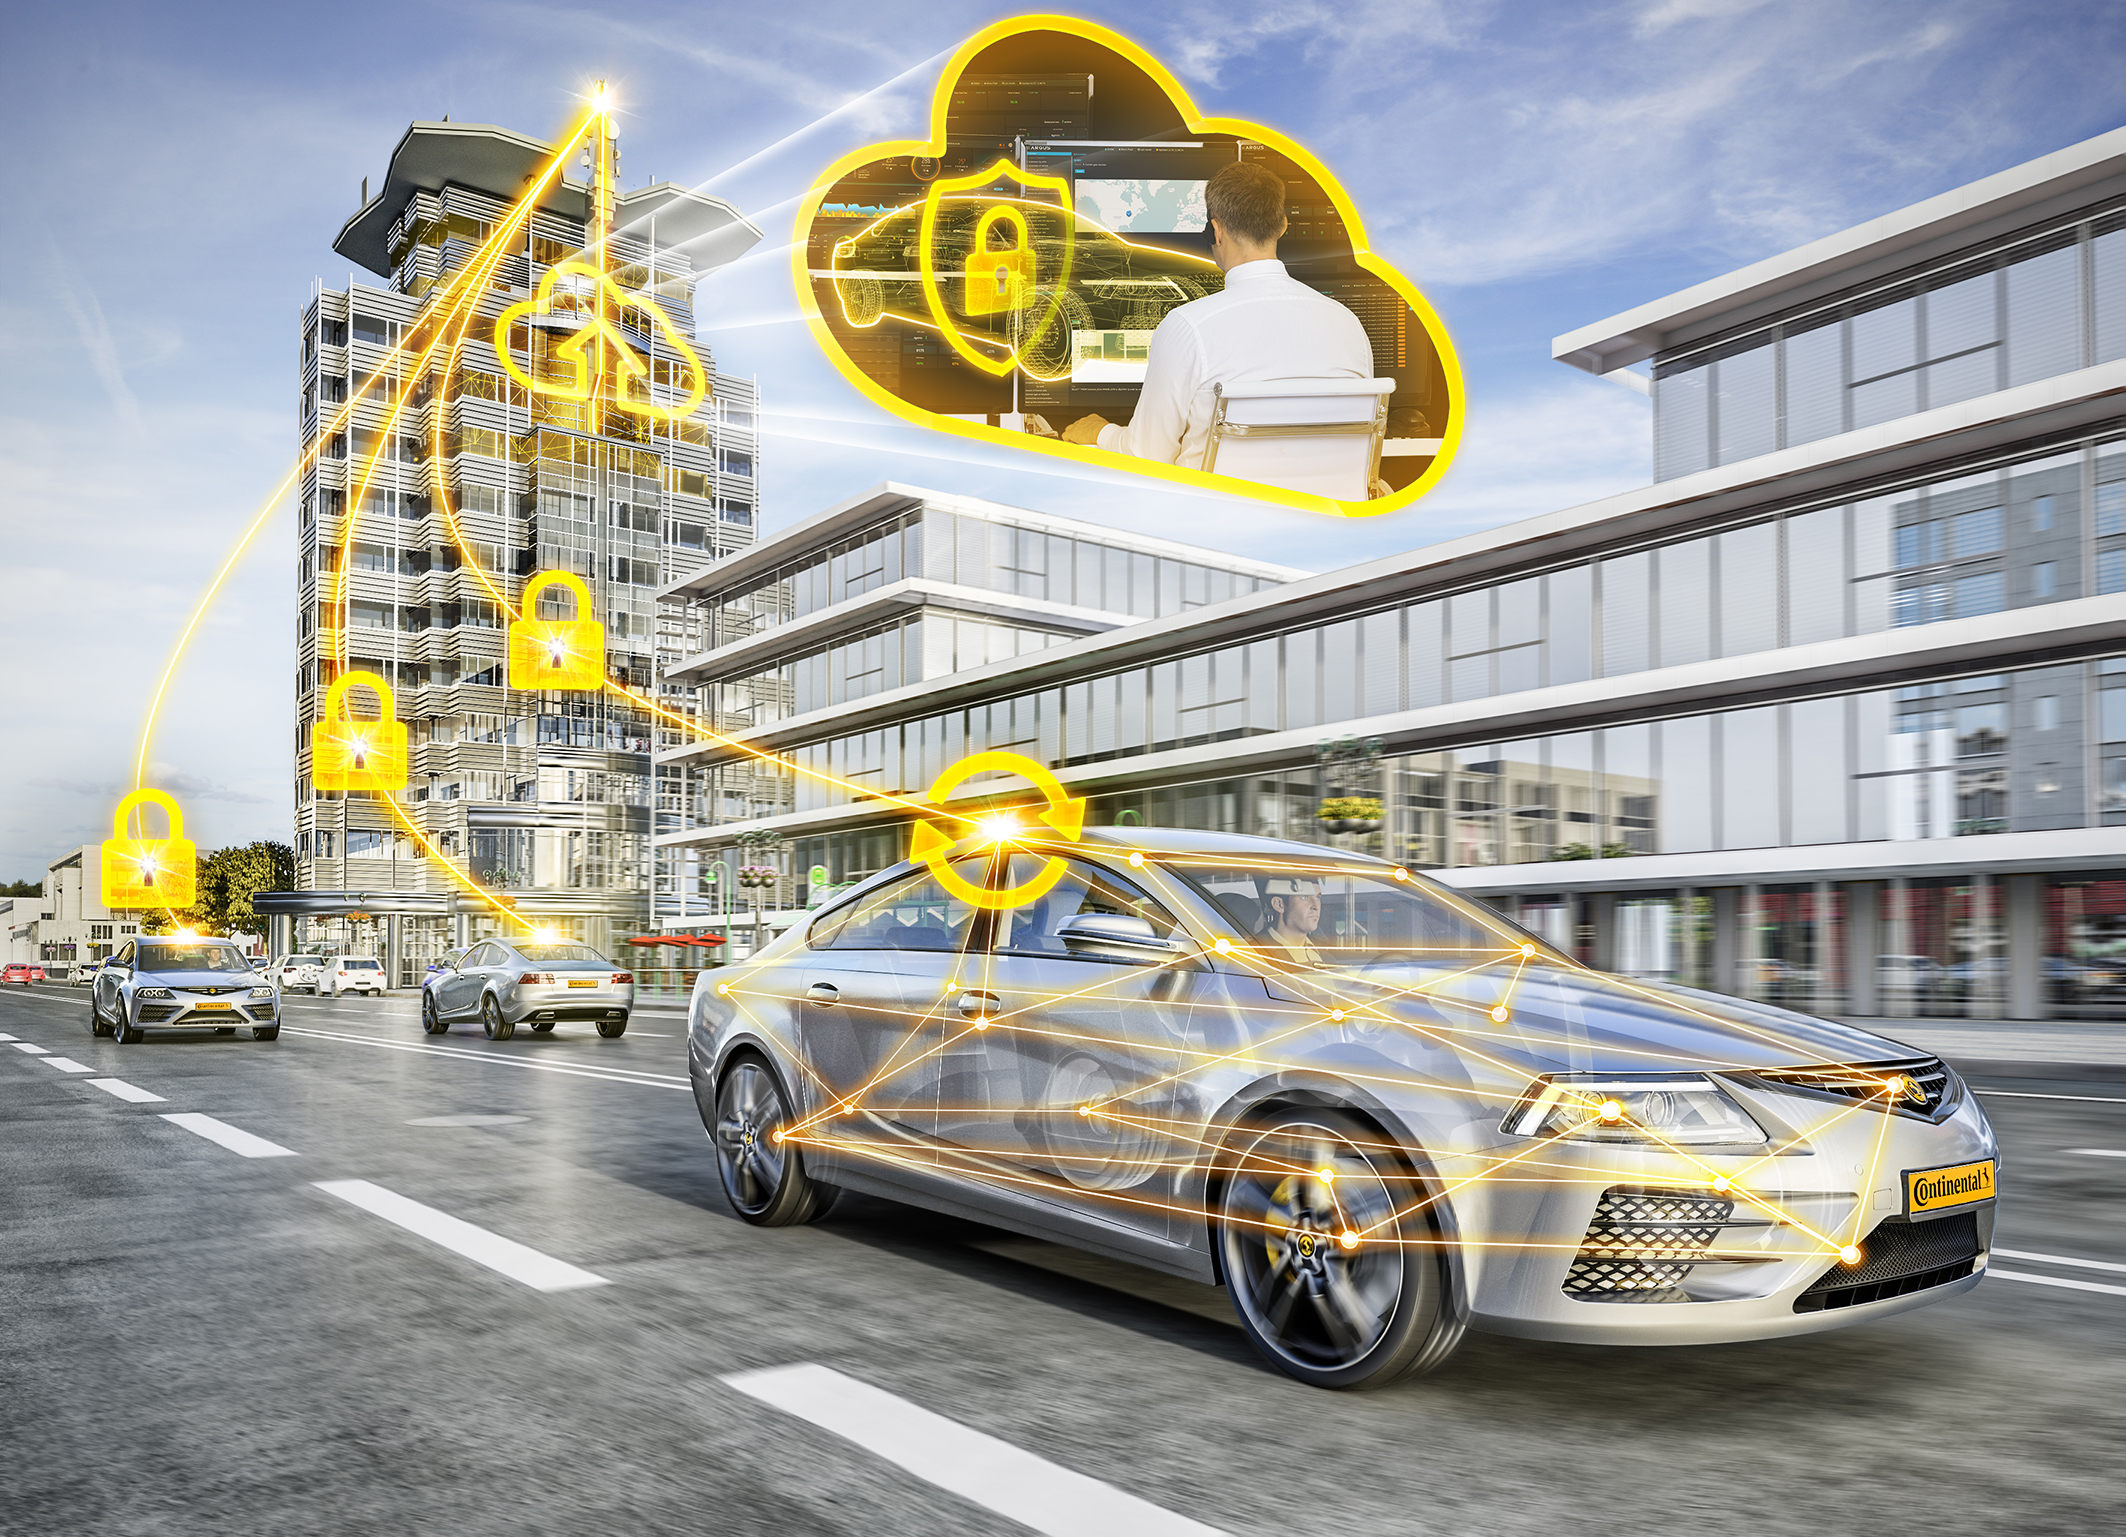 Continental Protects Vehicles From Cyber Attacks